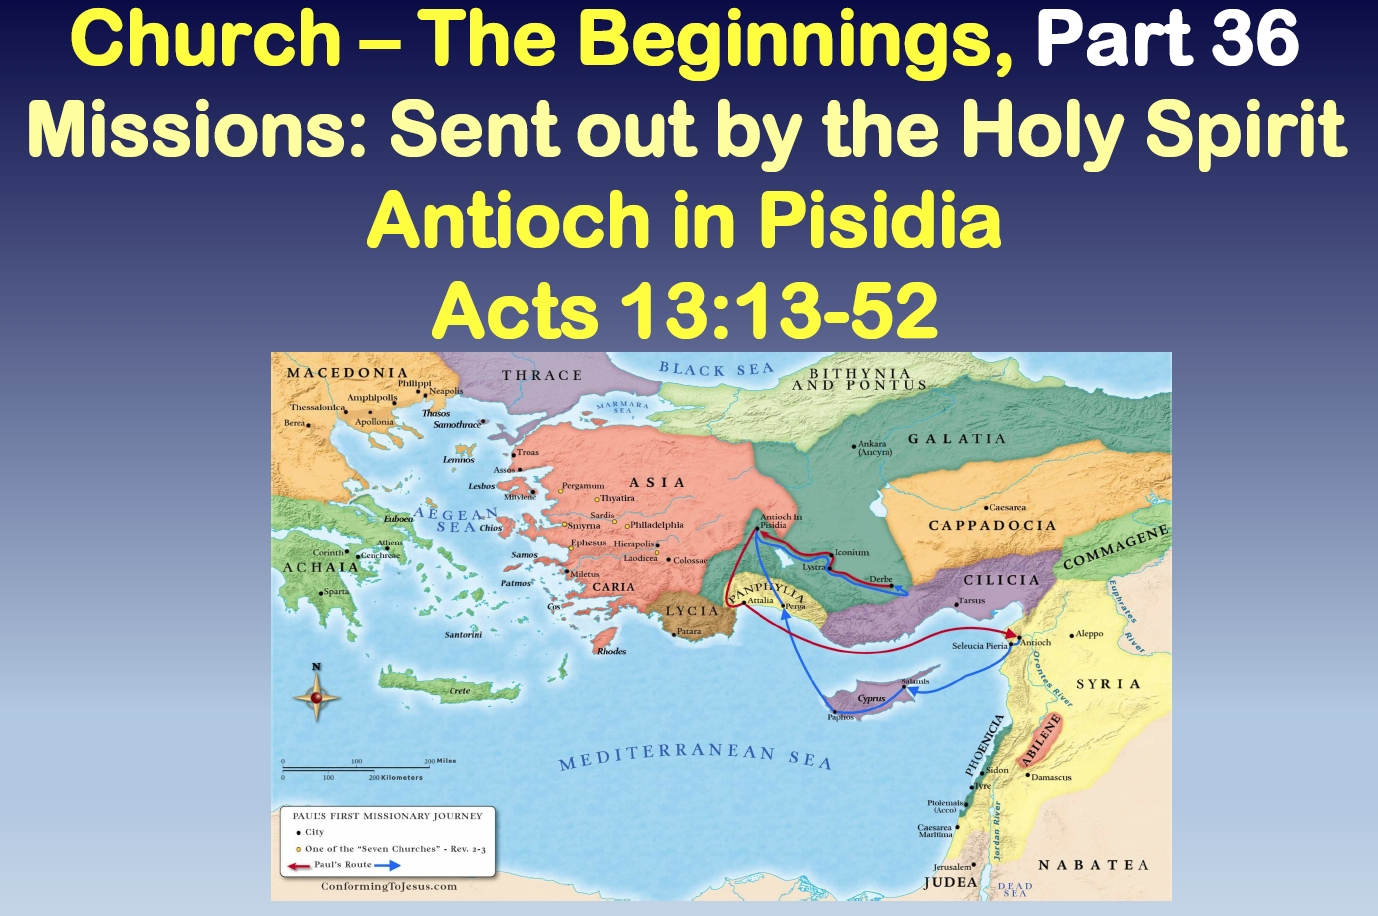 Missions: Sent out by the Holy Spirit - Antioch of Pisidia